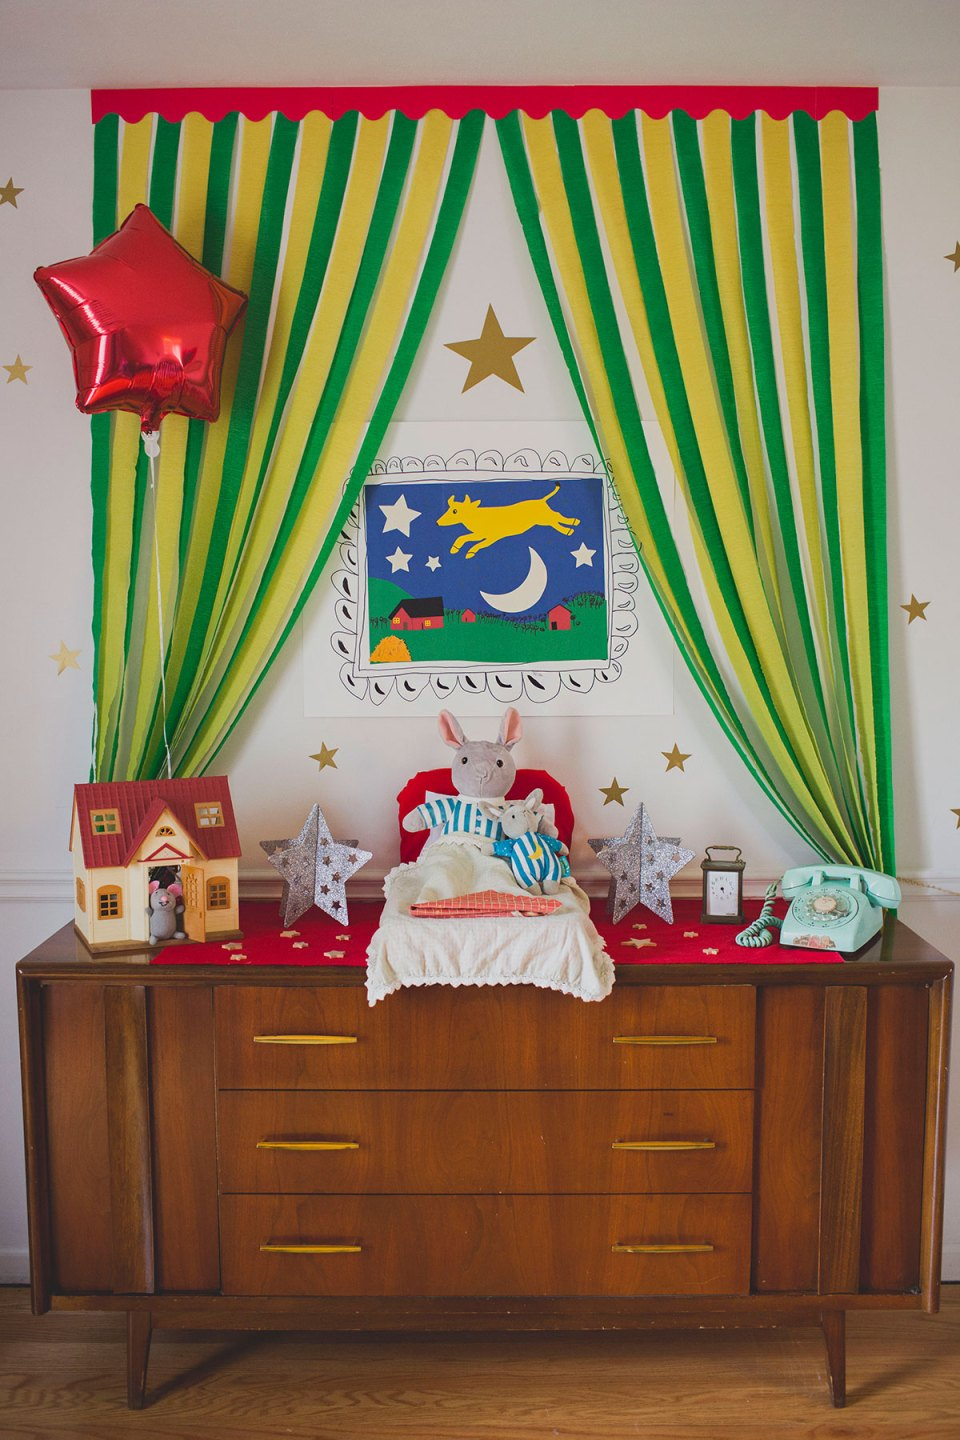 Violet S Goodnight Moon Birthday Party Alice Wingerden